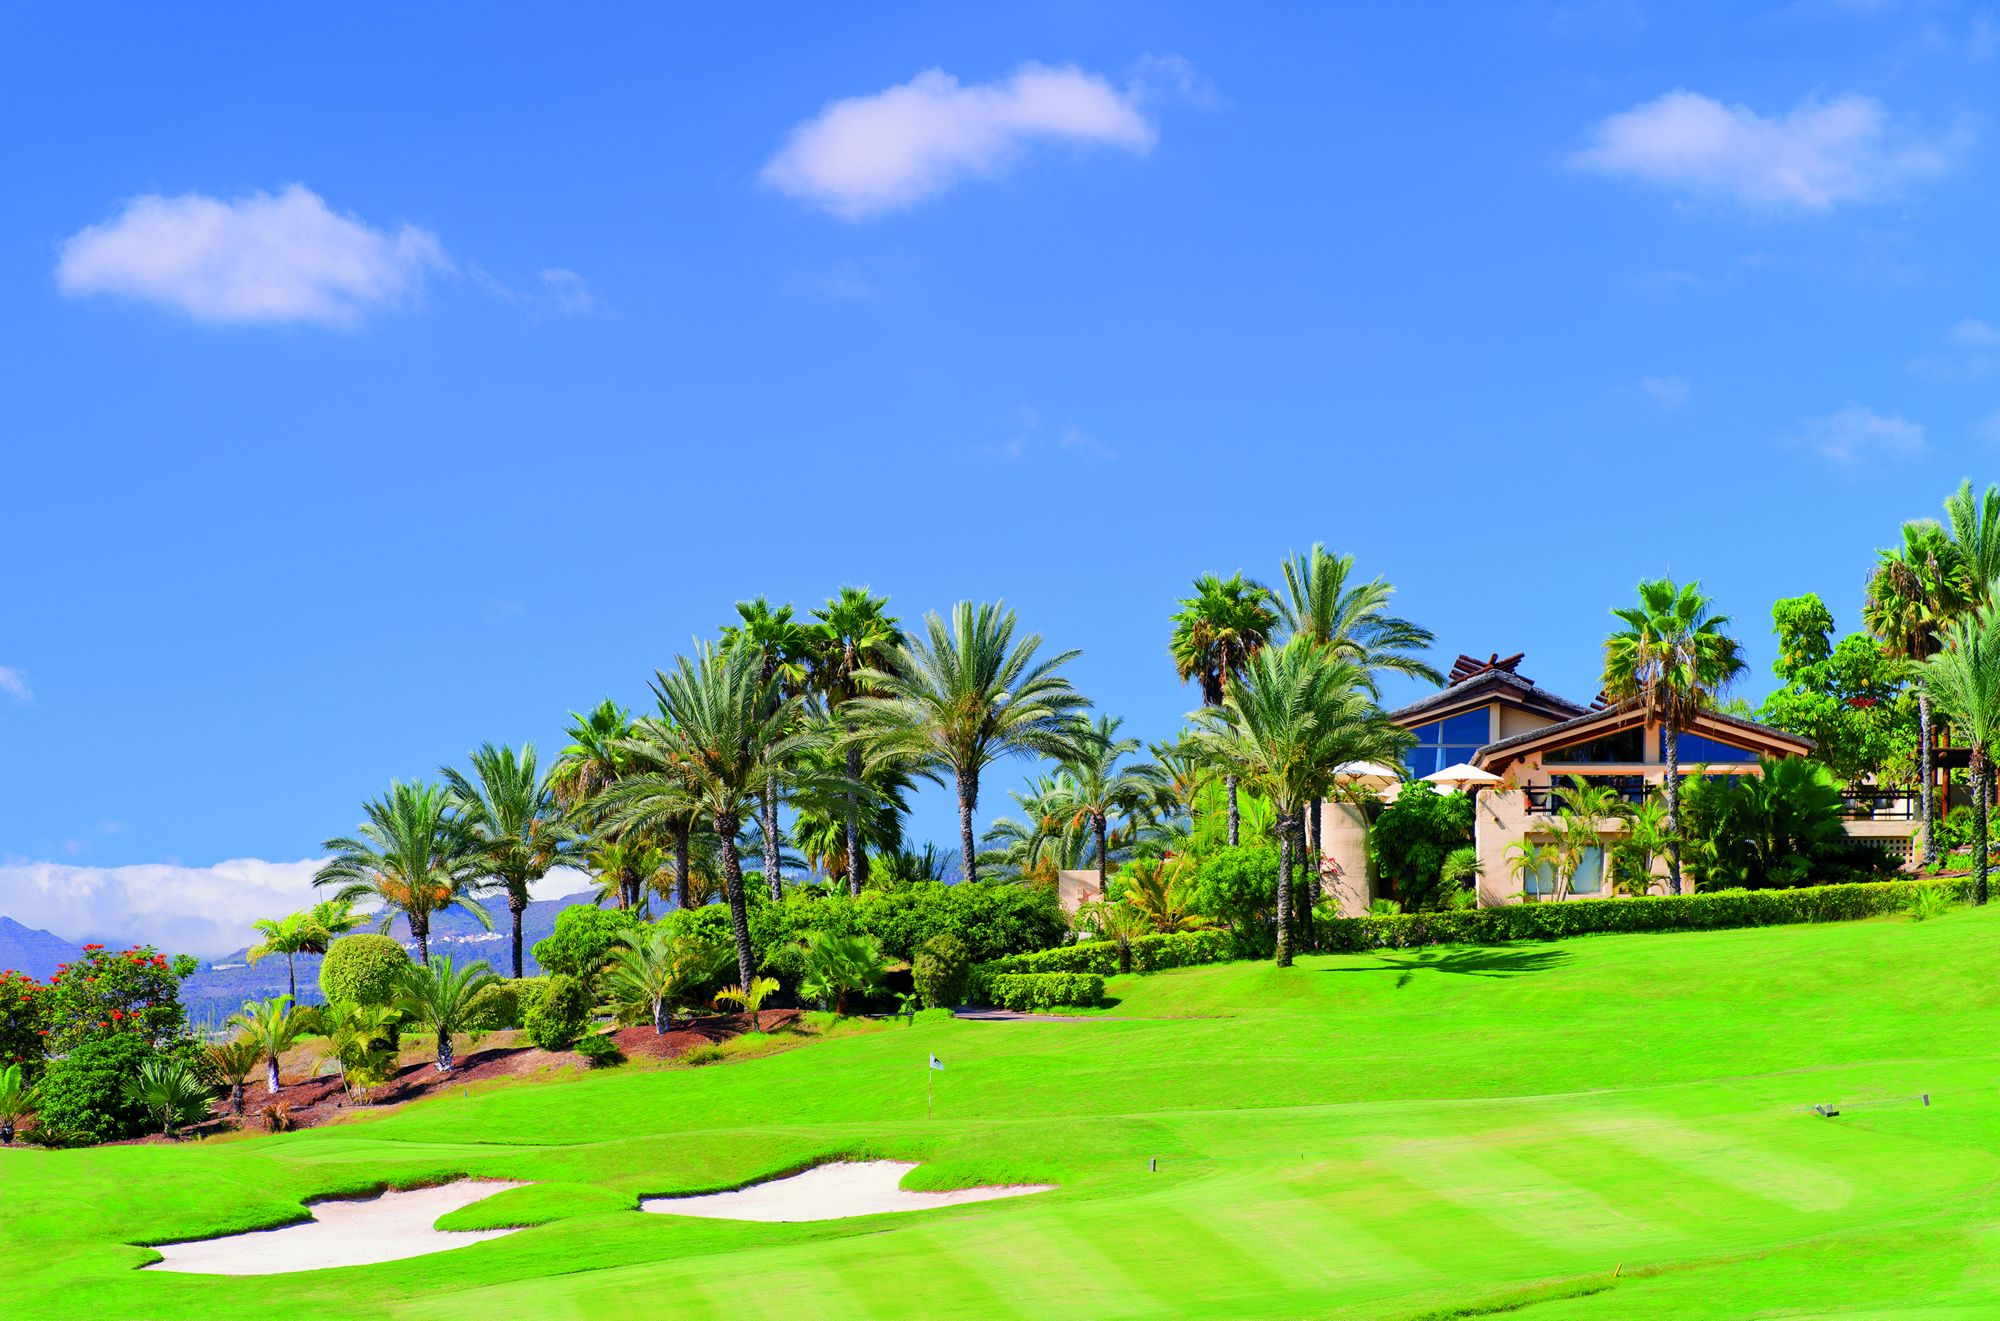 A building and palm trees overlook a lush golf course